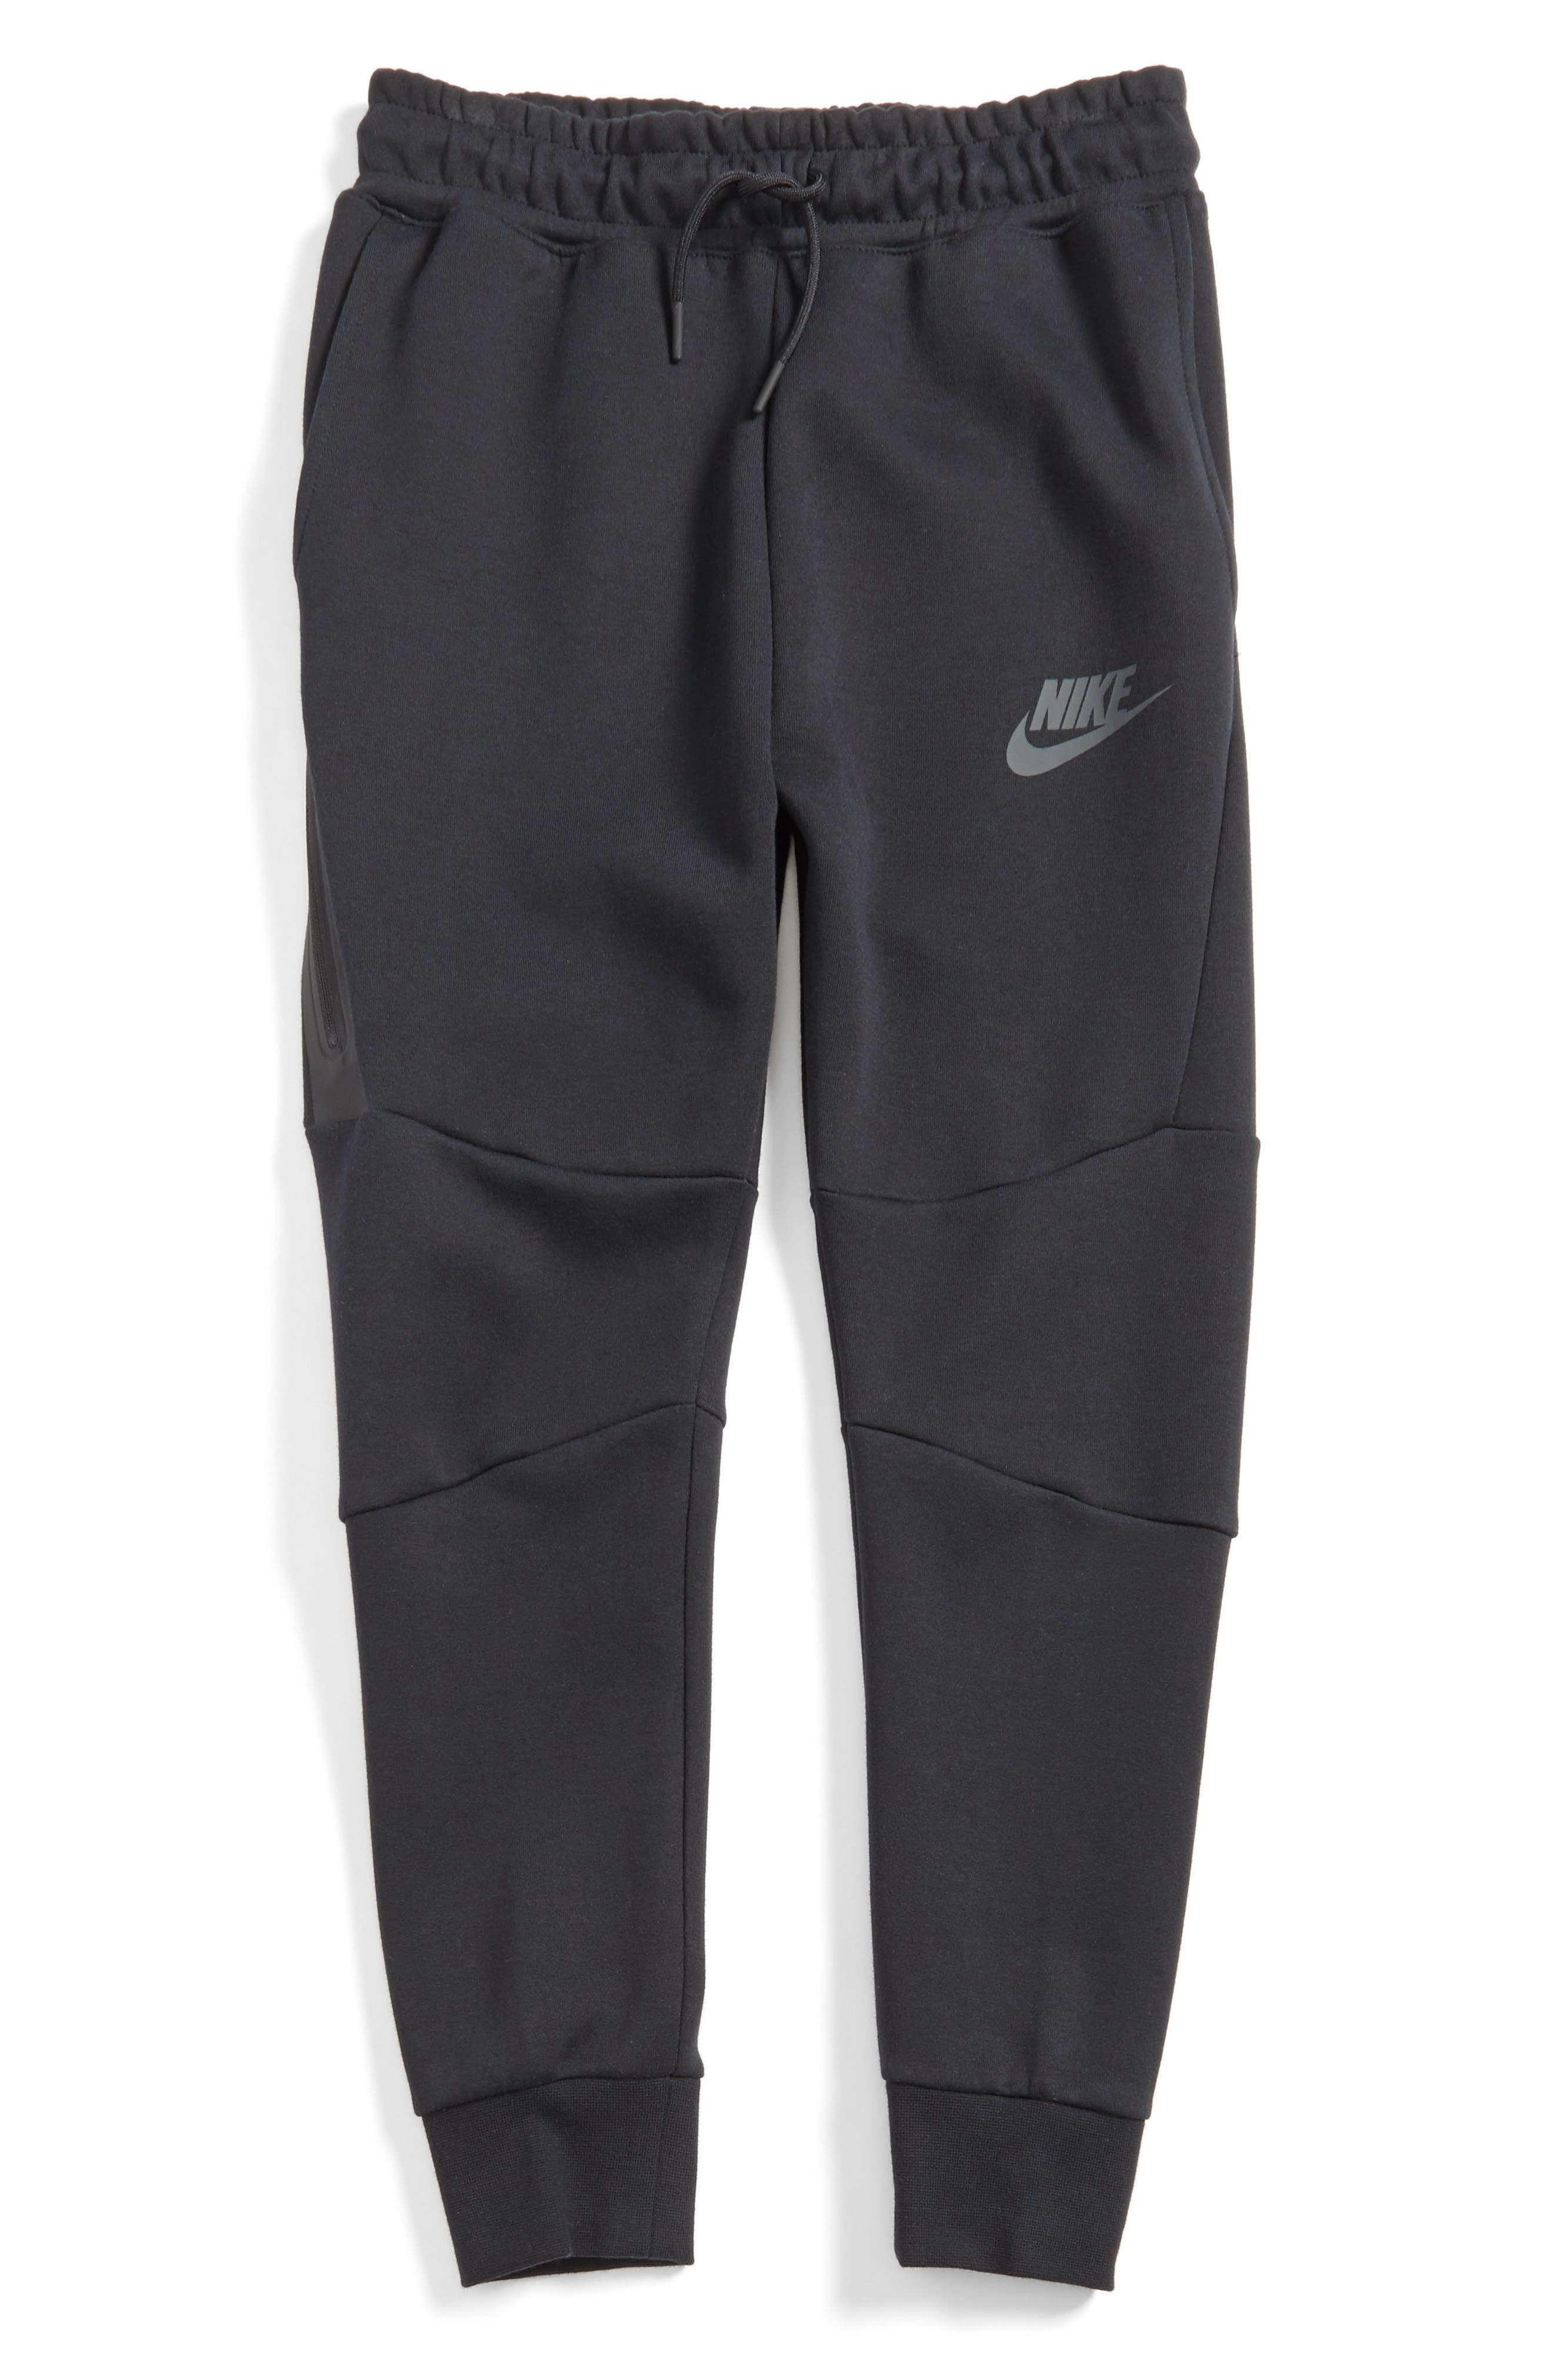 Alternate Image 1 Selected - Nike Tech Fleece Pants (Little Boys & Big Boys)